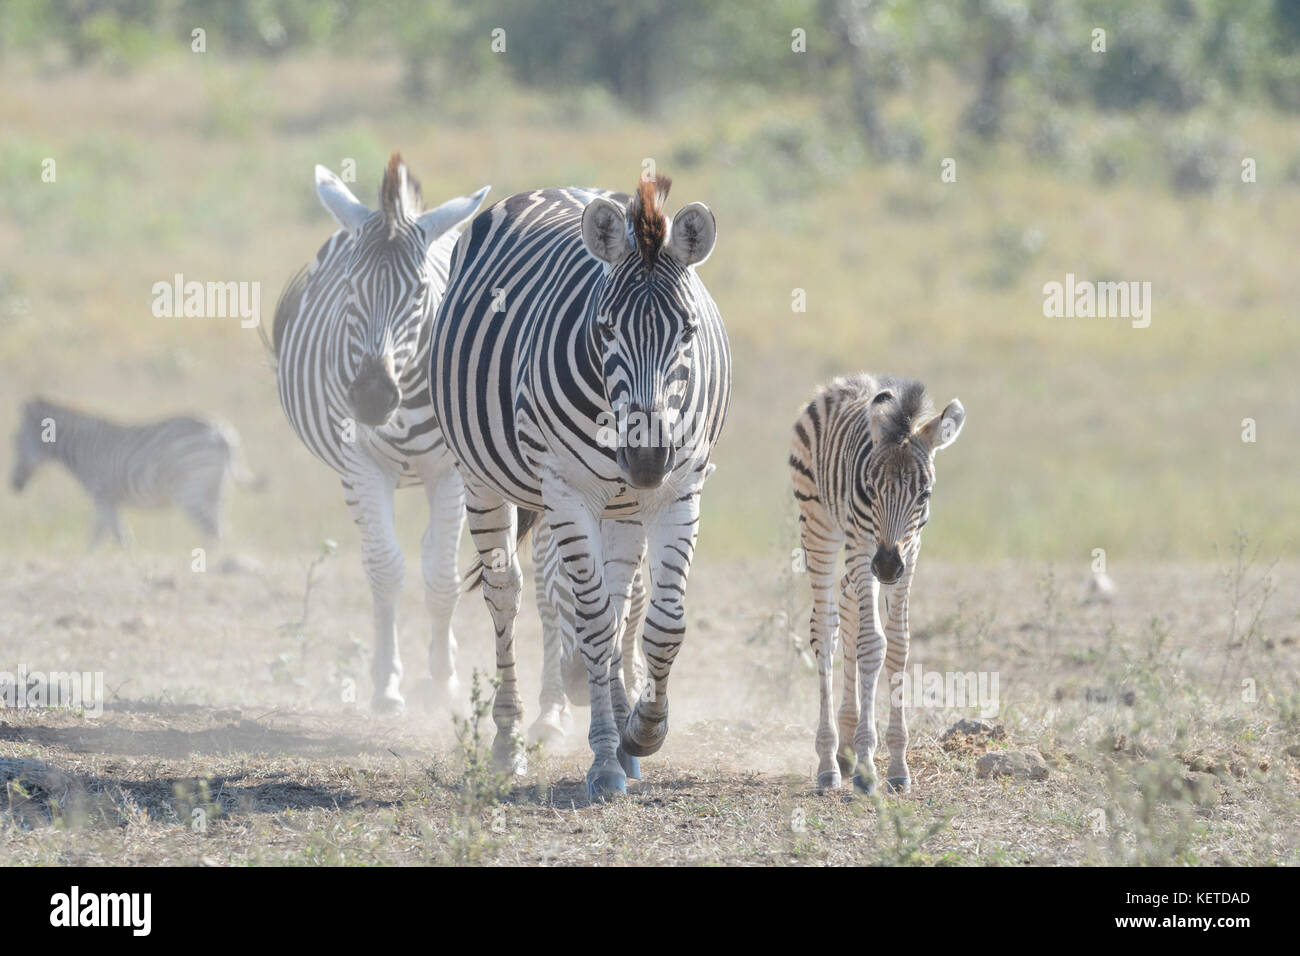 Plains zebra (Equus quagga) mother and foal walking on savanna, Kruger National Park, South Africa - Stock Image